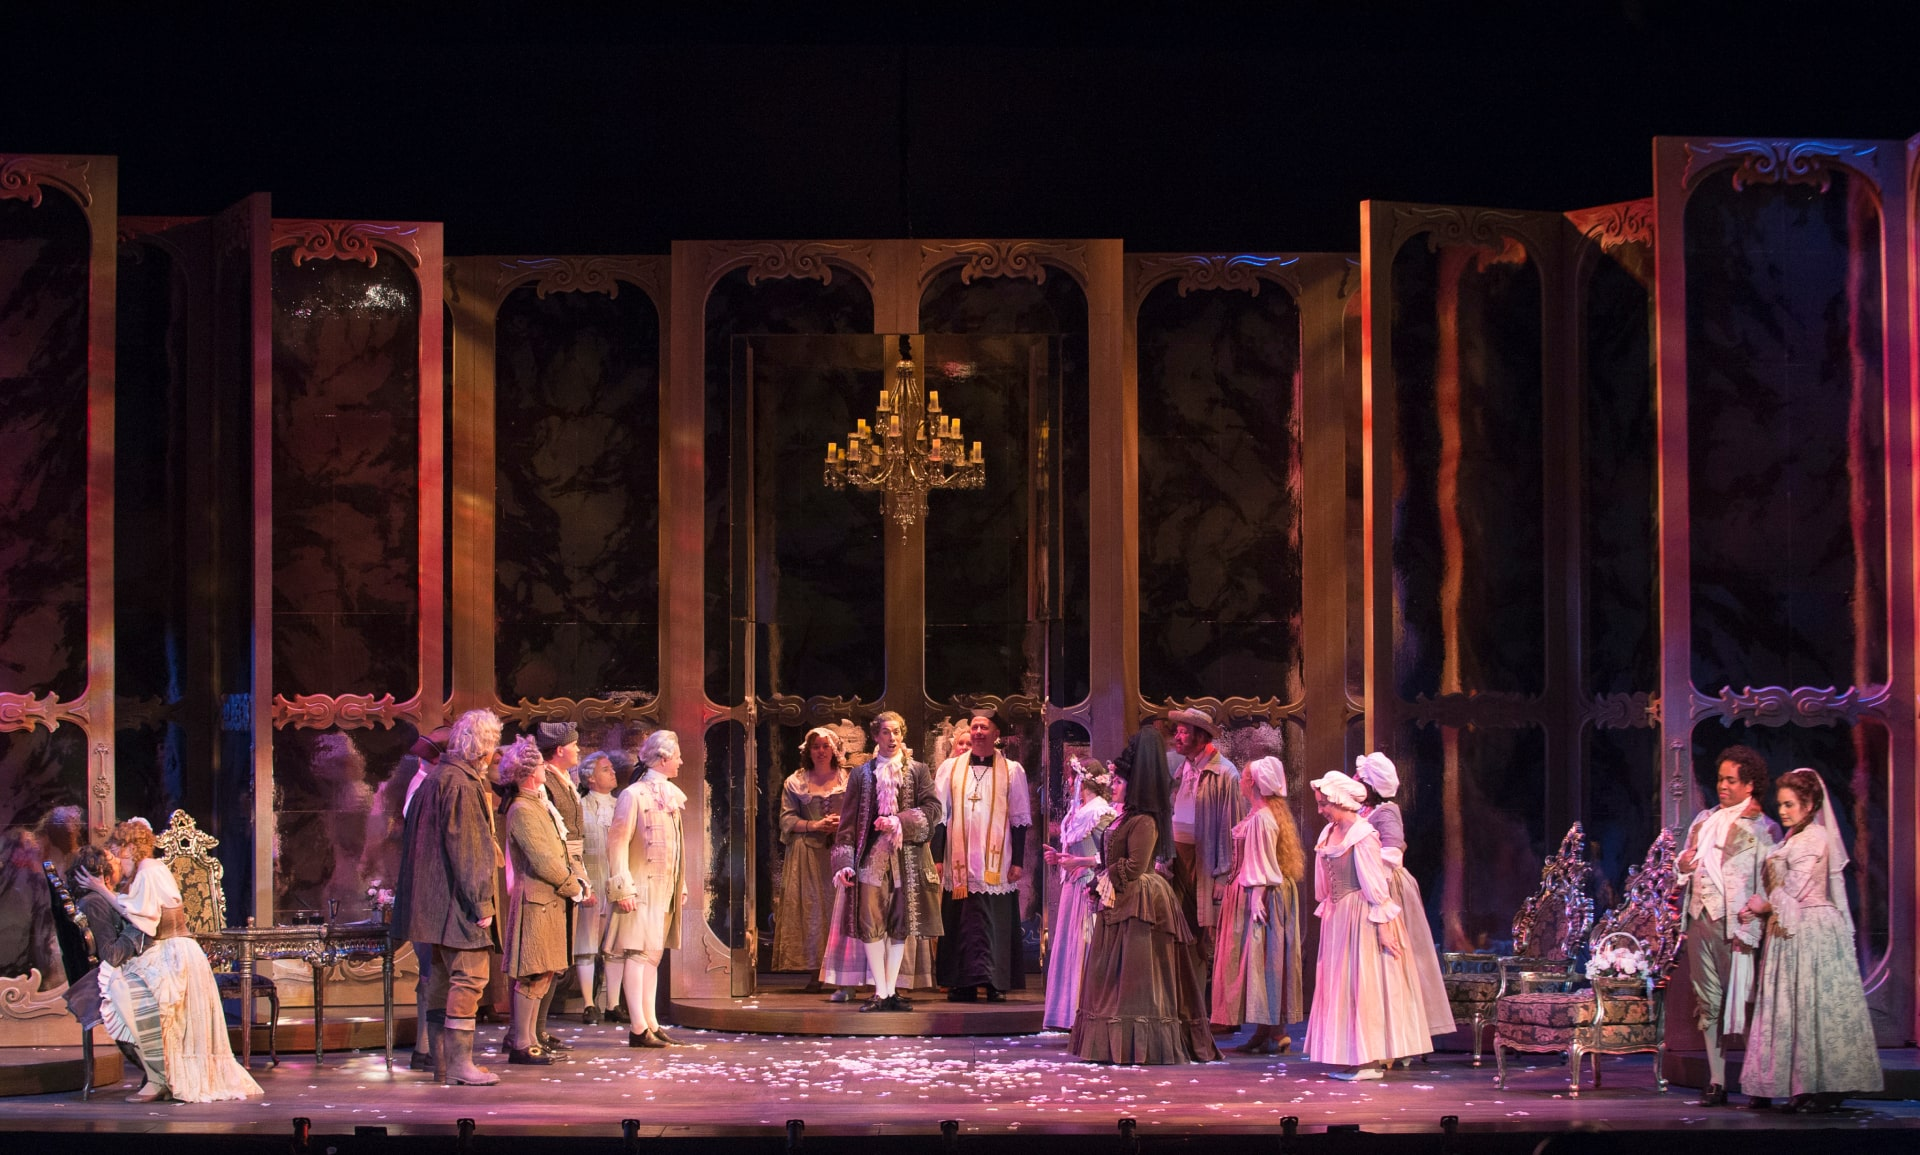 Opera players in 18th century attire scattered under lavender in front of towering, painted revolving doors.